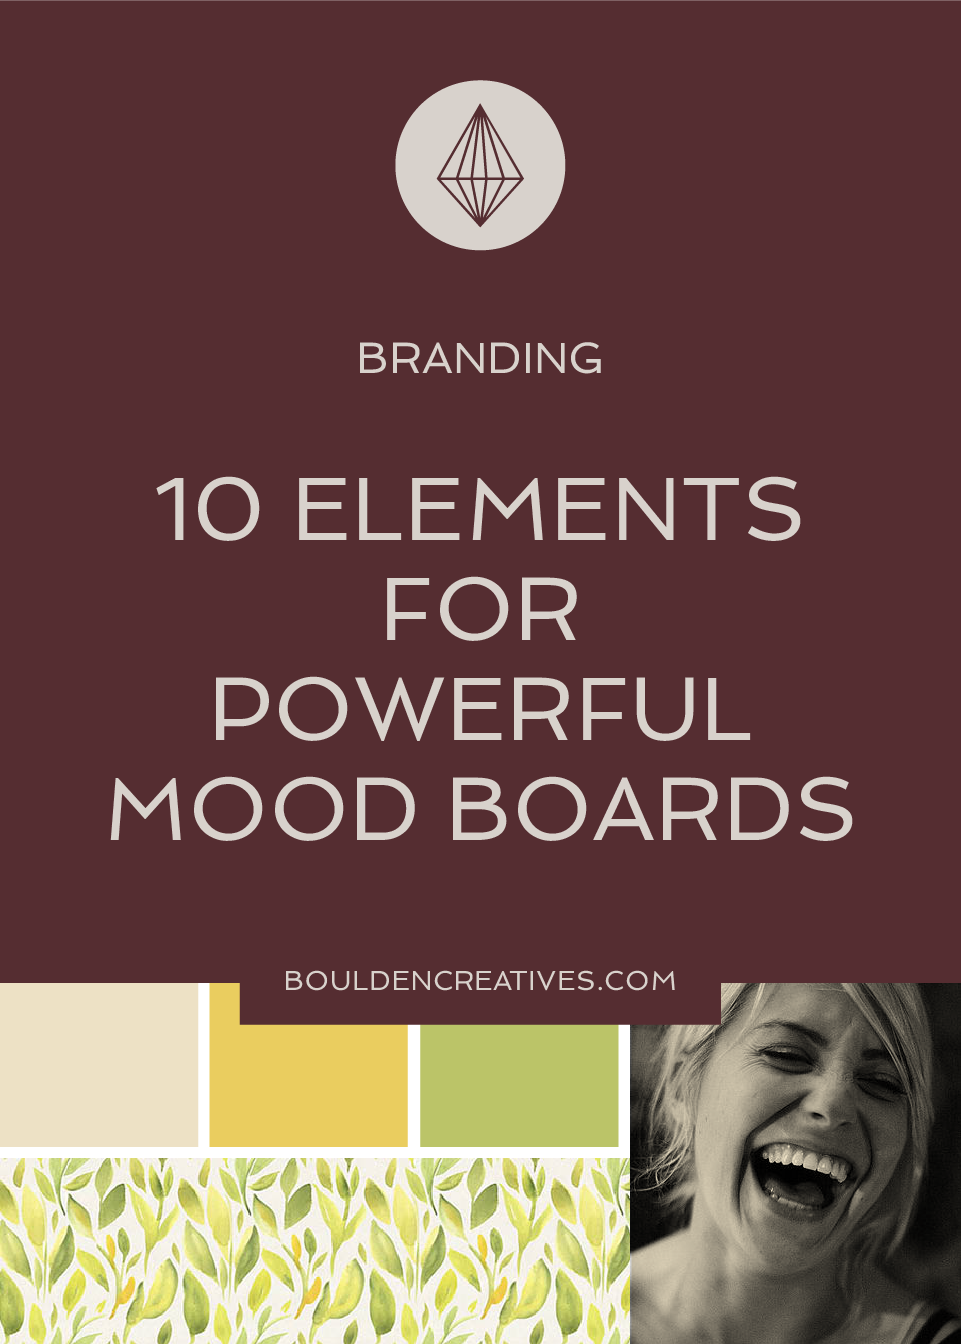 10 Elements for Powerful Mood Boards